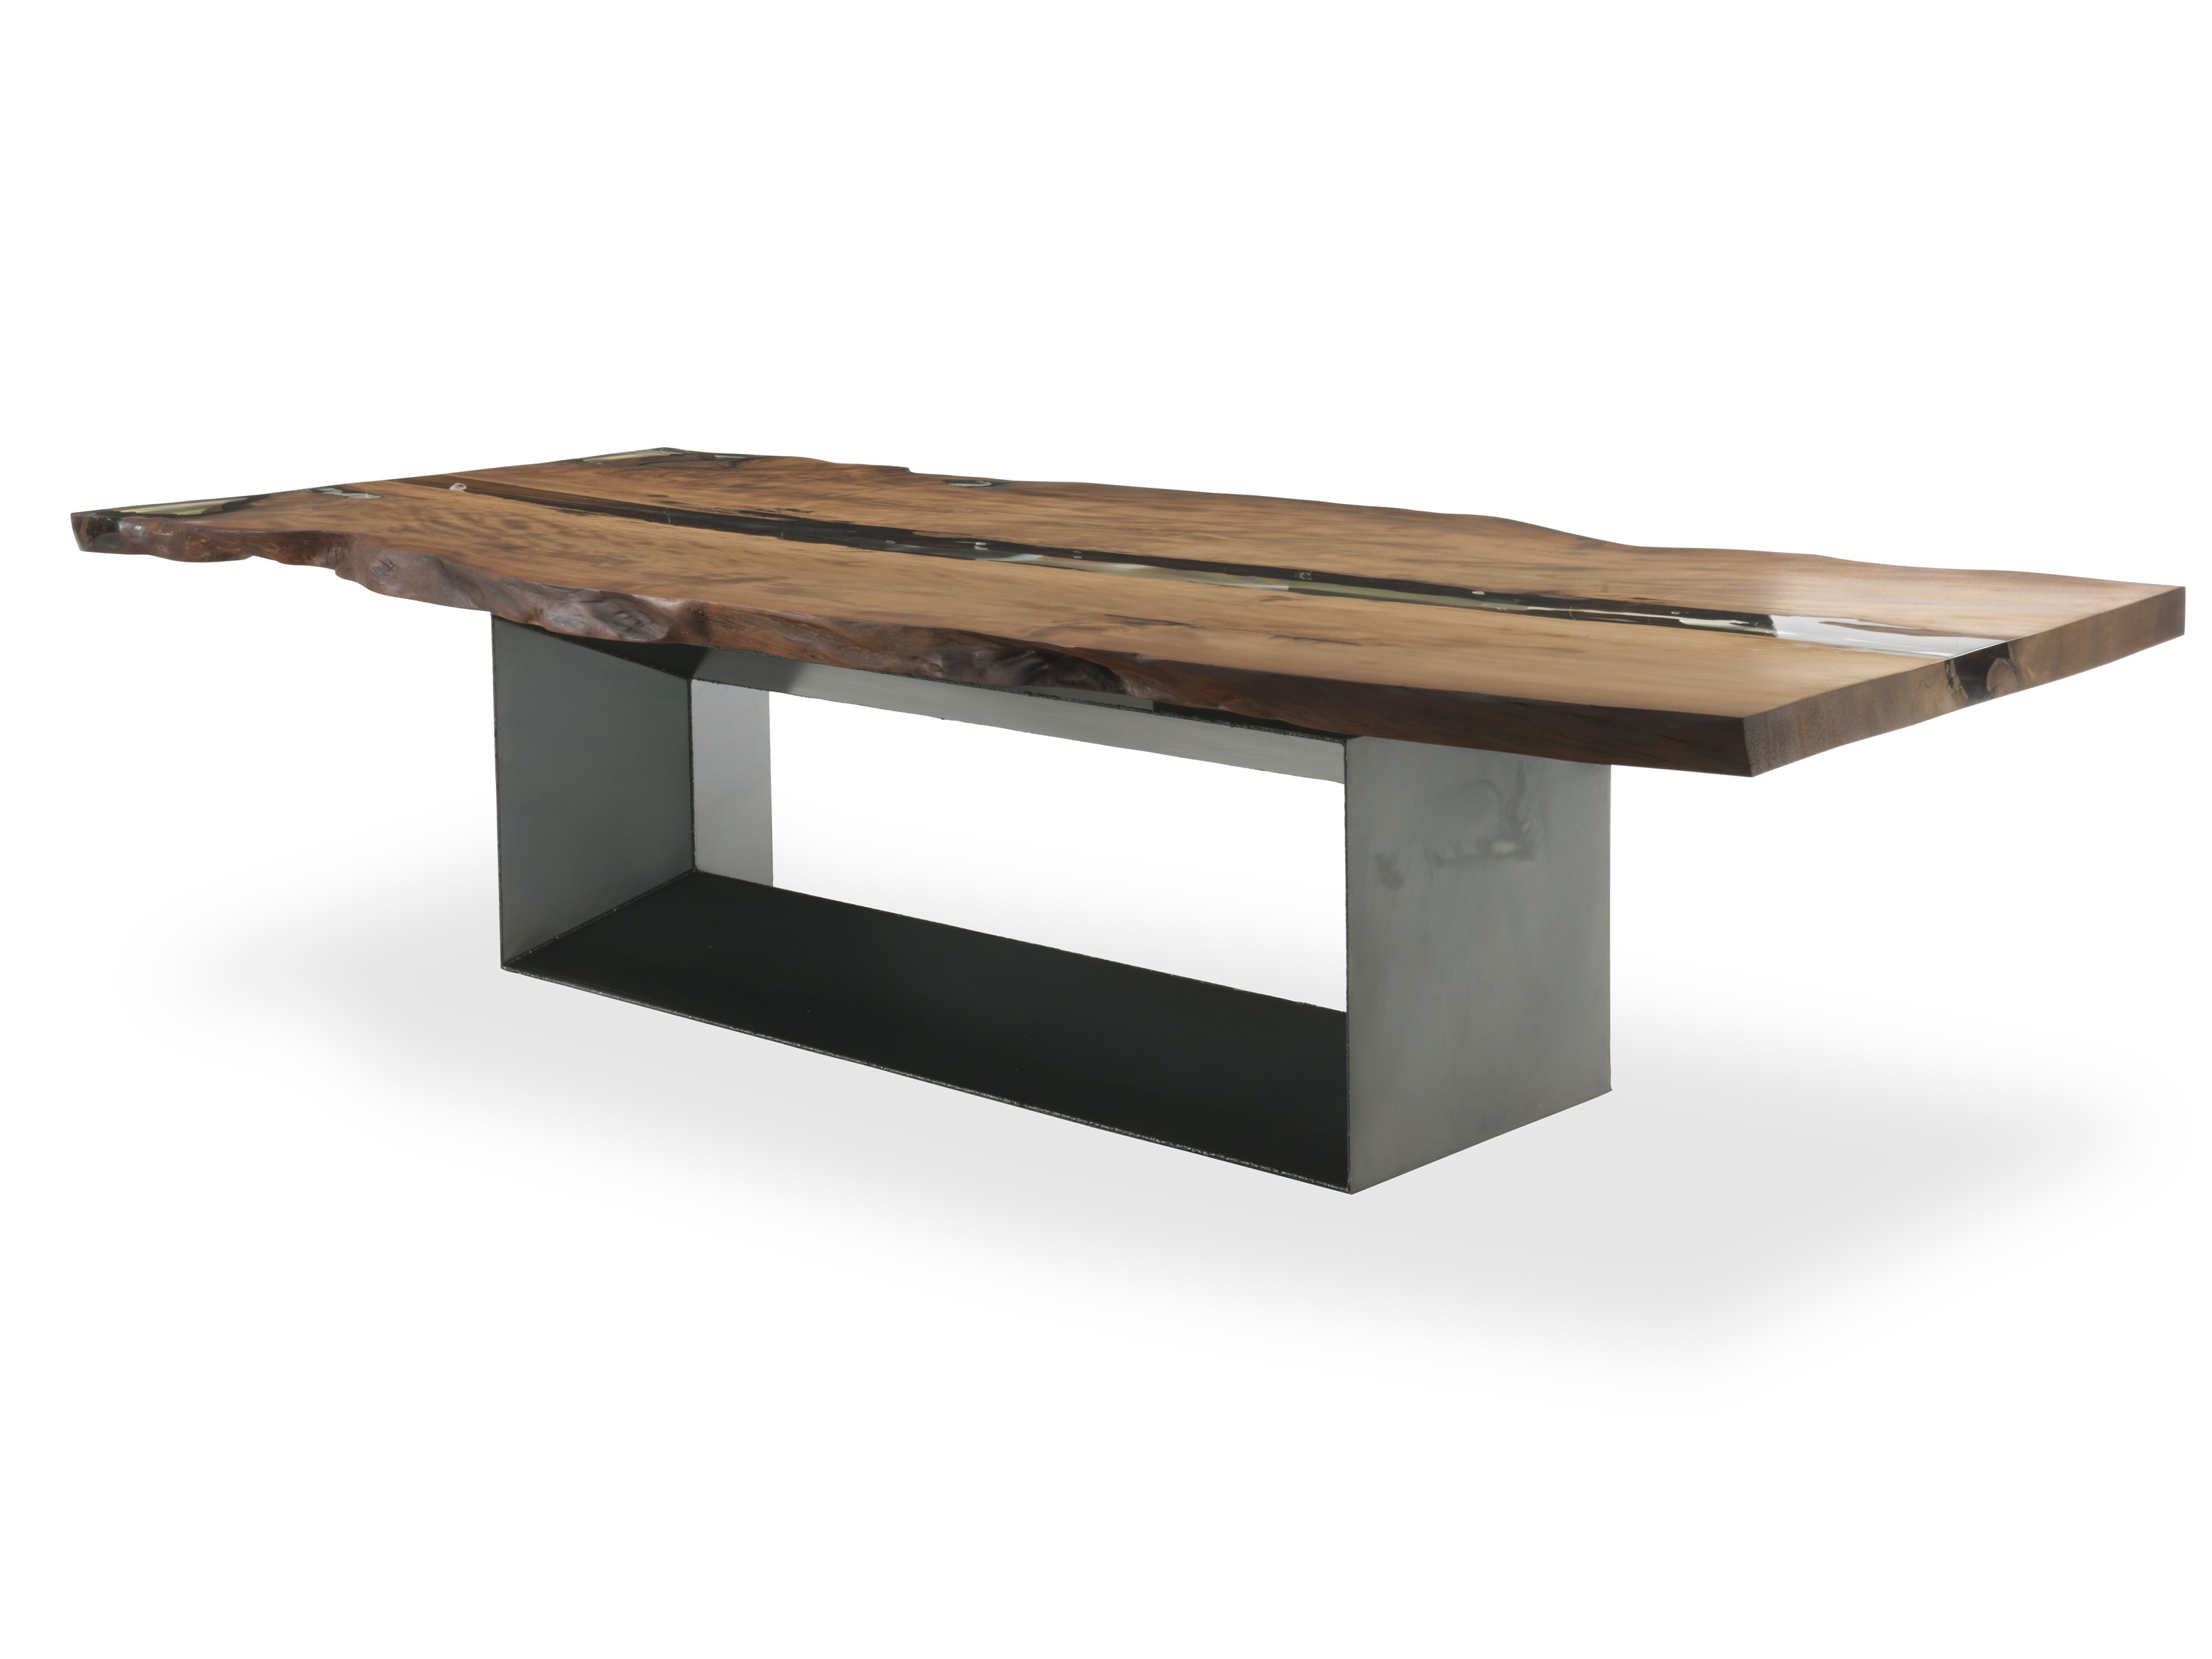 Kauri wood coffee table AUCKLAND BLOCK By Riva 1920 design C R &S